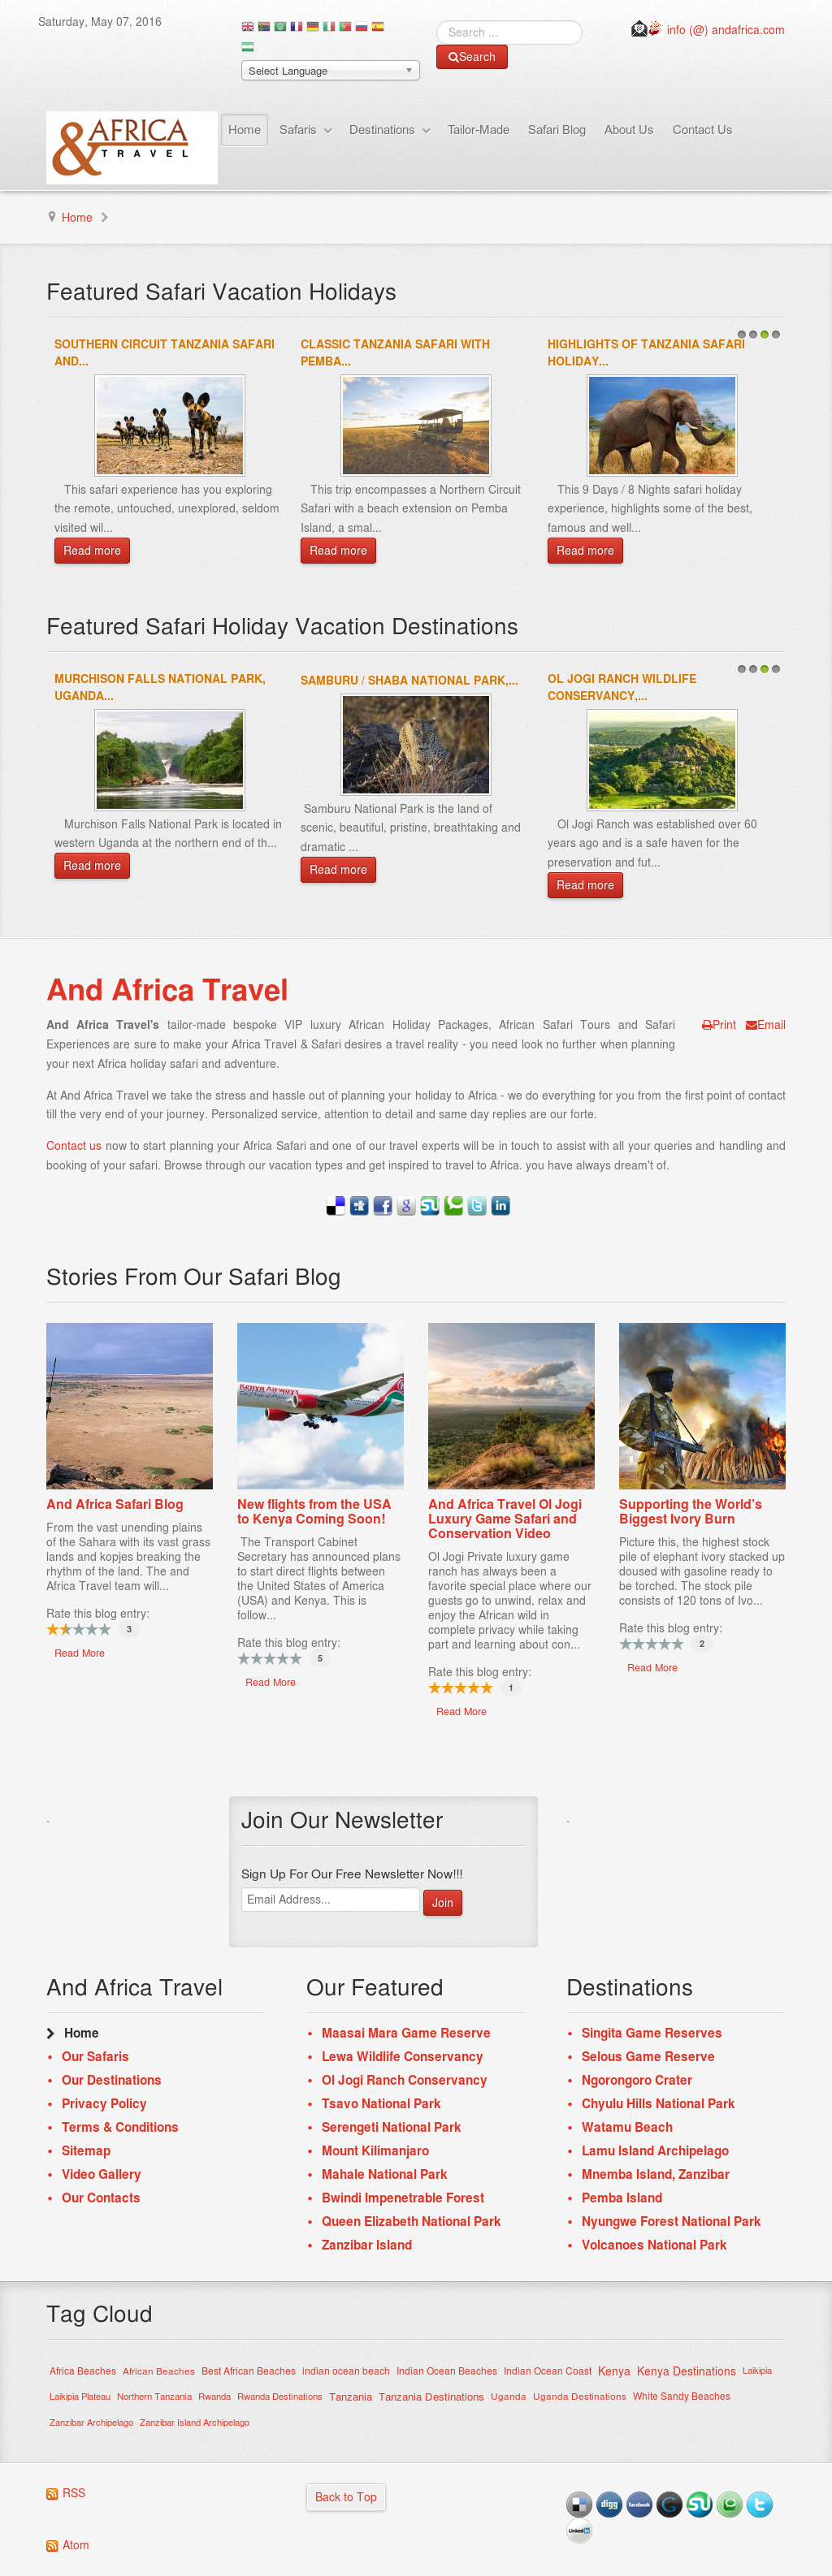 And Africa Travel Competitors, Revenue and Employees - Owler Company